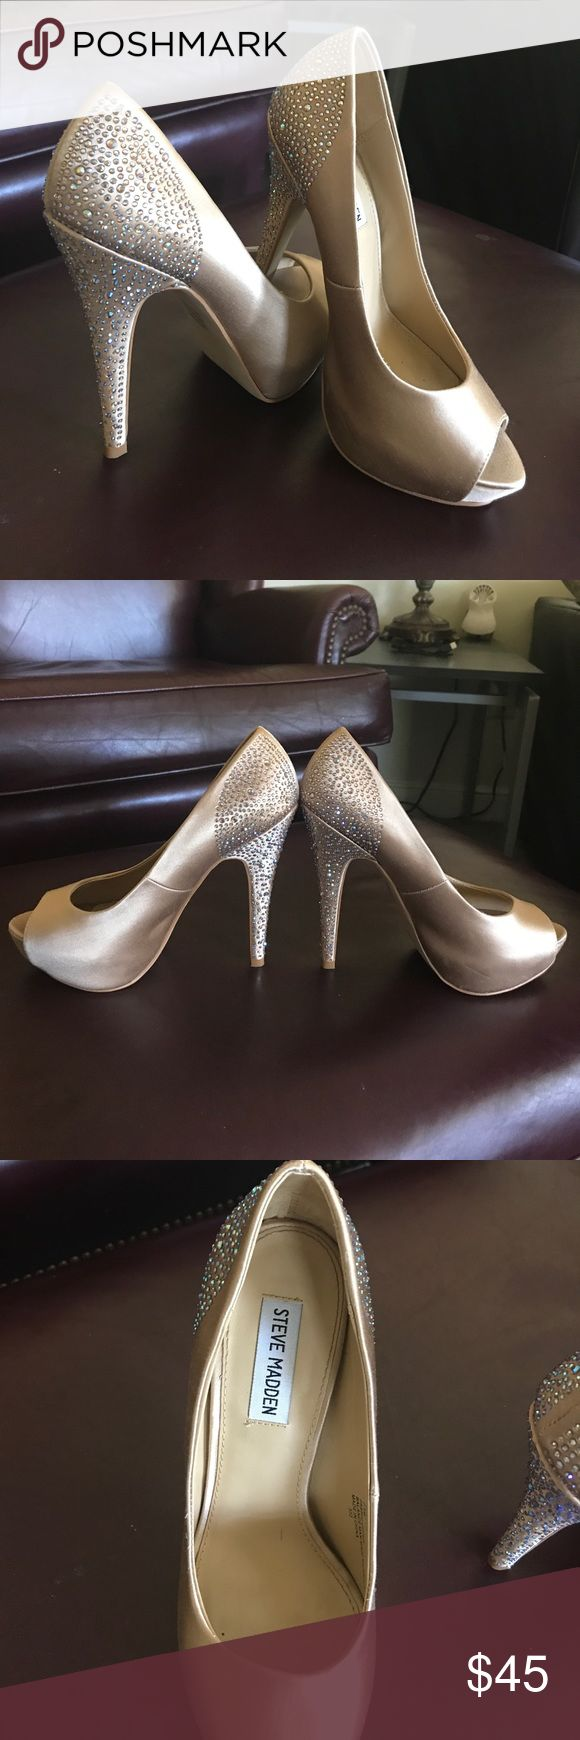 7.5 champagne colored heels with sequins on heel High heels with sequins open toe shoe Steve Madden Shoes Heels